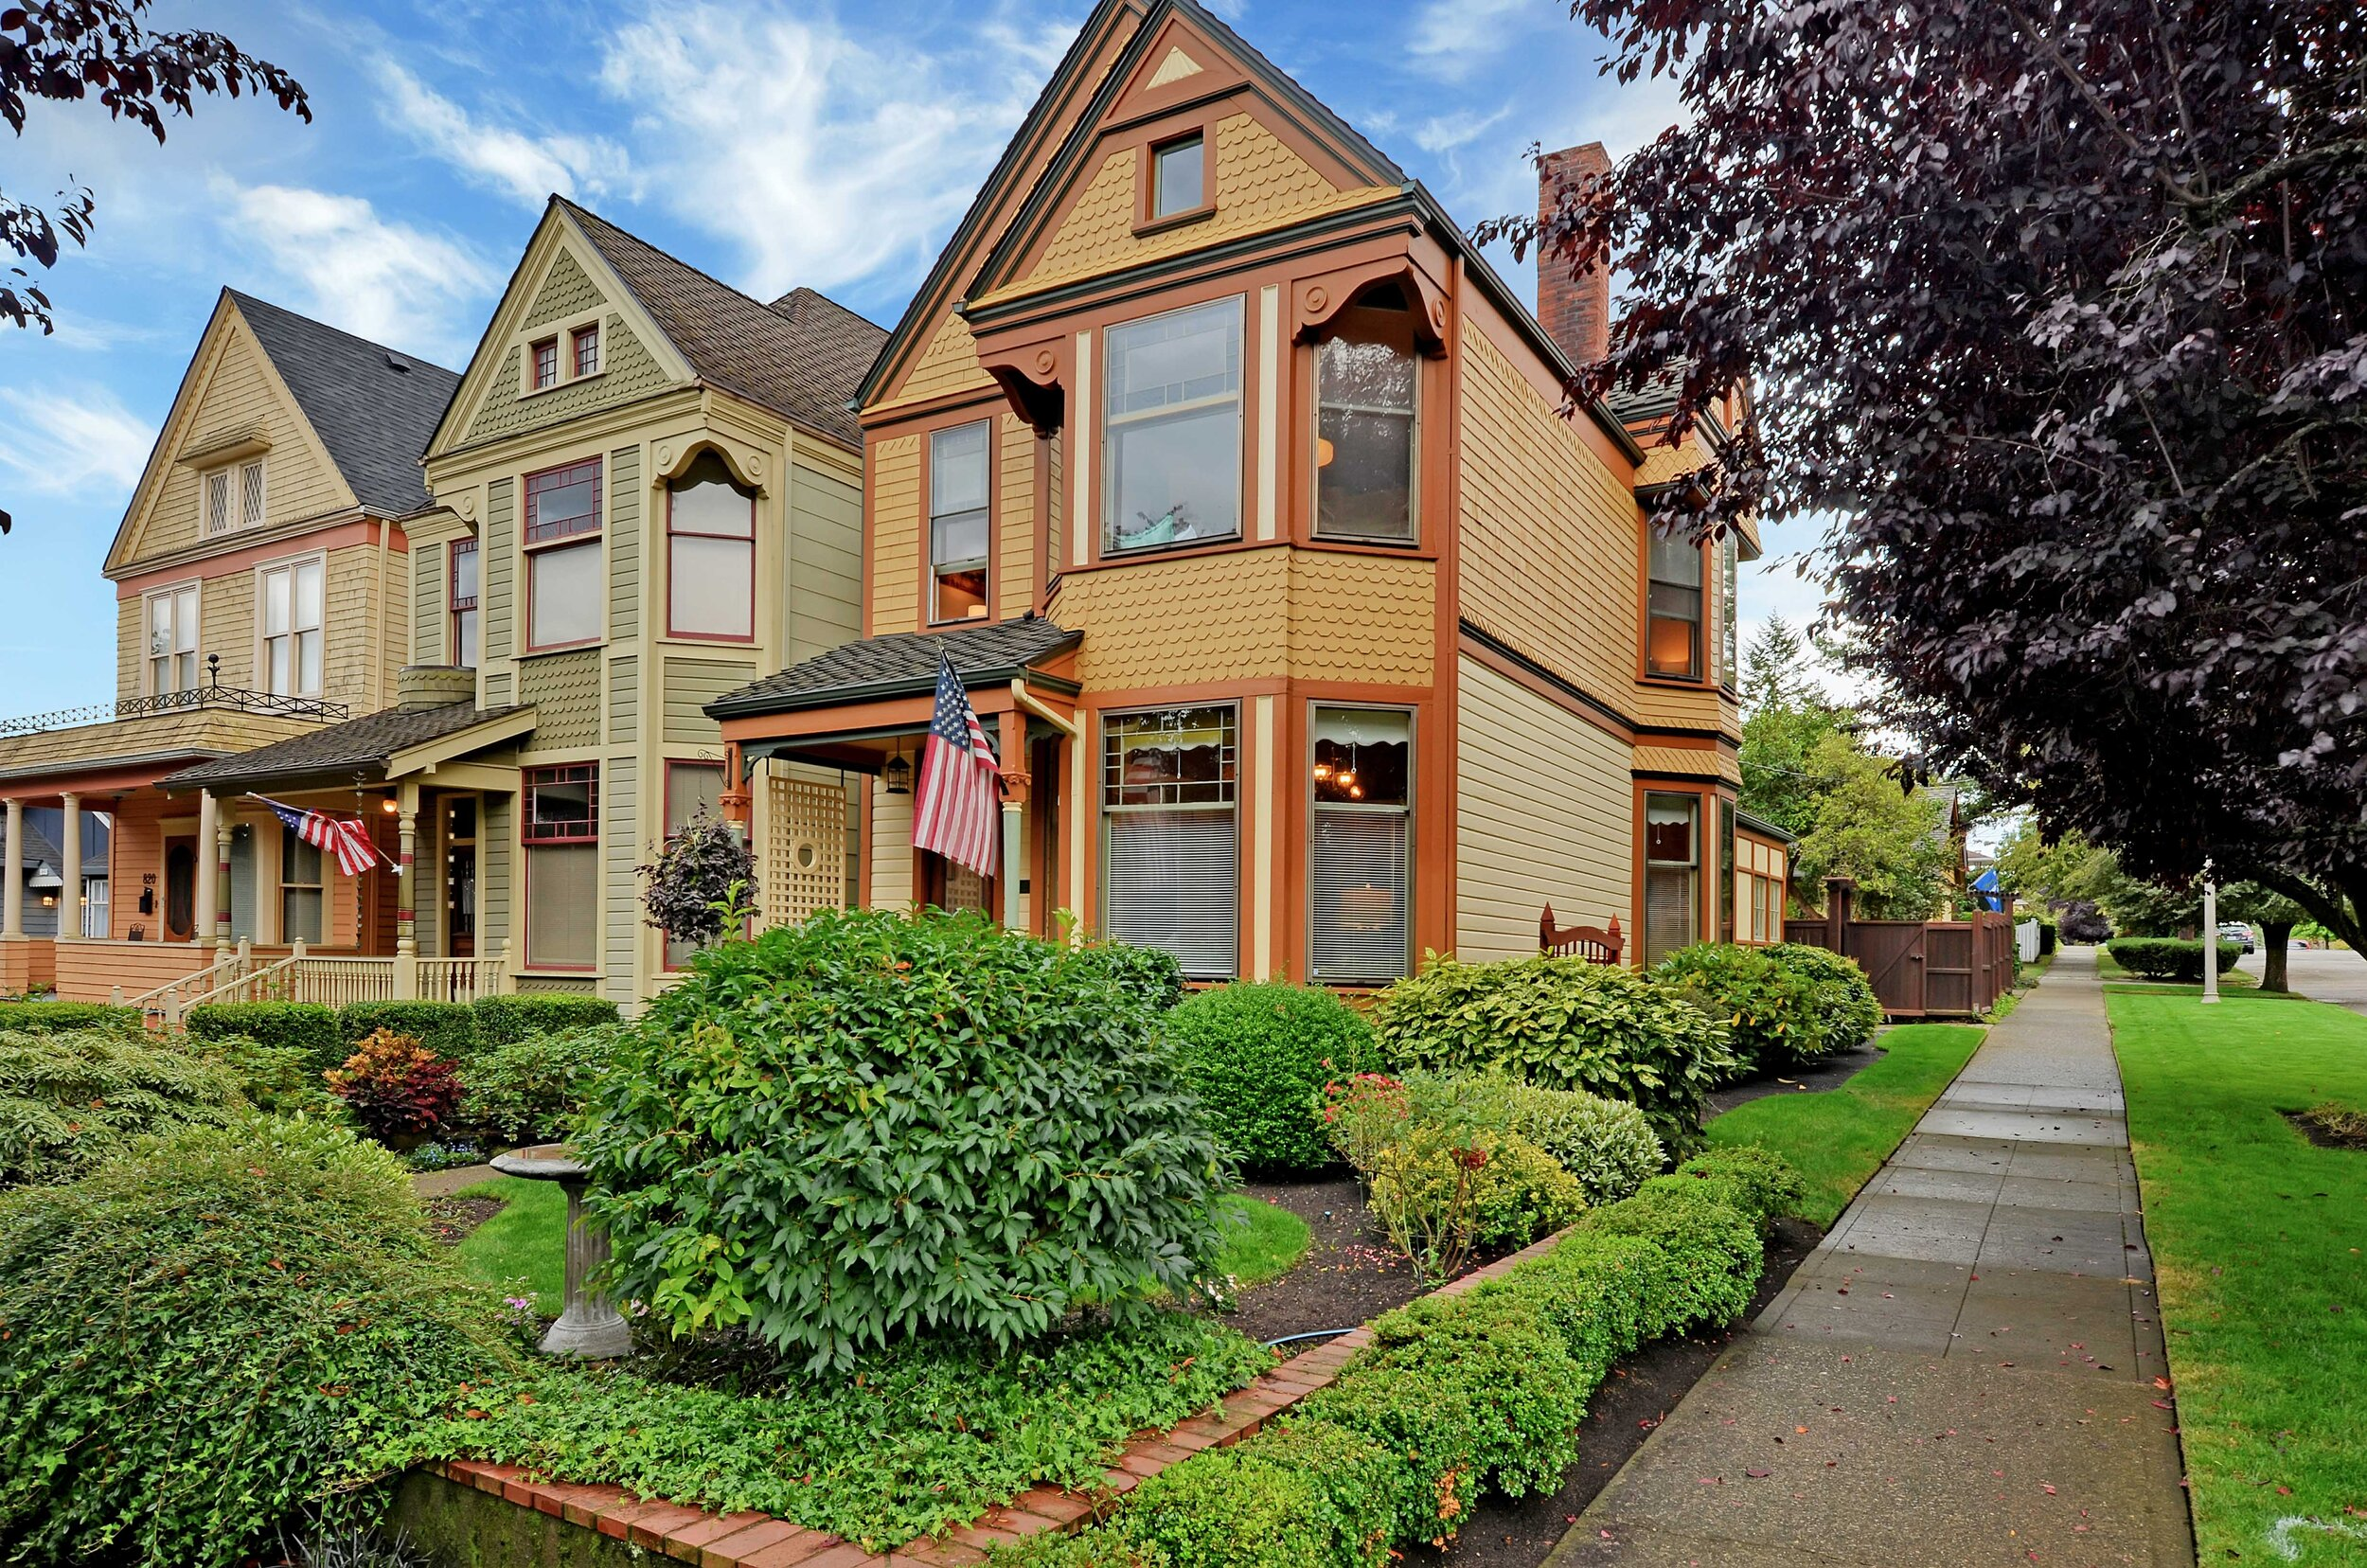 This set of Victorian homes is gathered like friends chatting on the corner. Standing on the end of the line, 824 enjoys more natural light from the north and the spaciousness of the planting strip across the sidewalk.